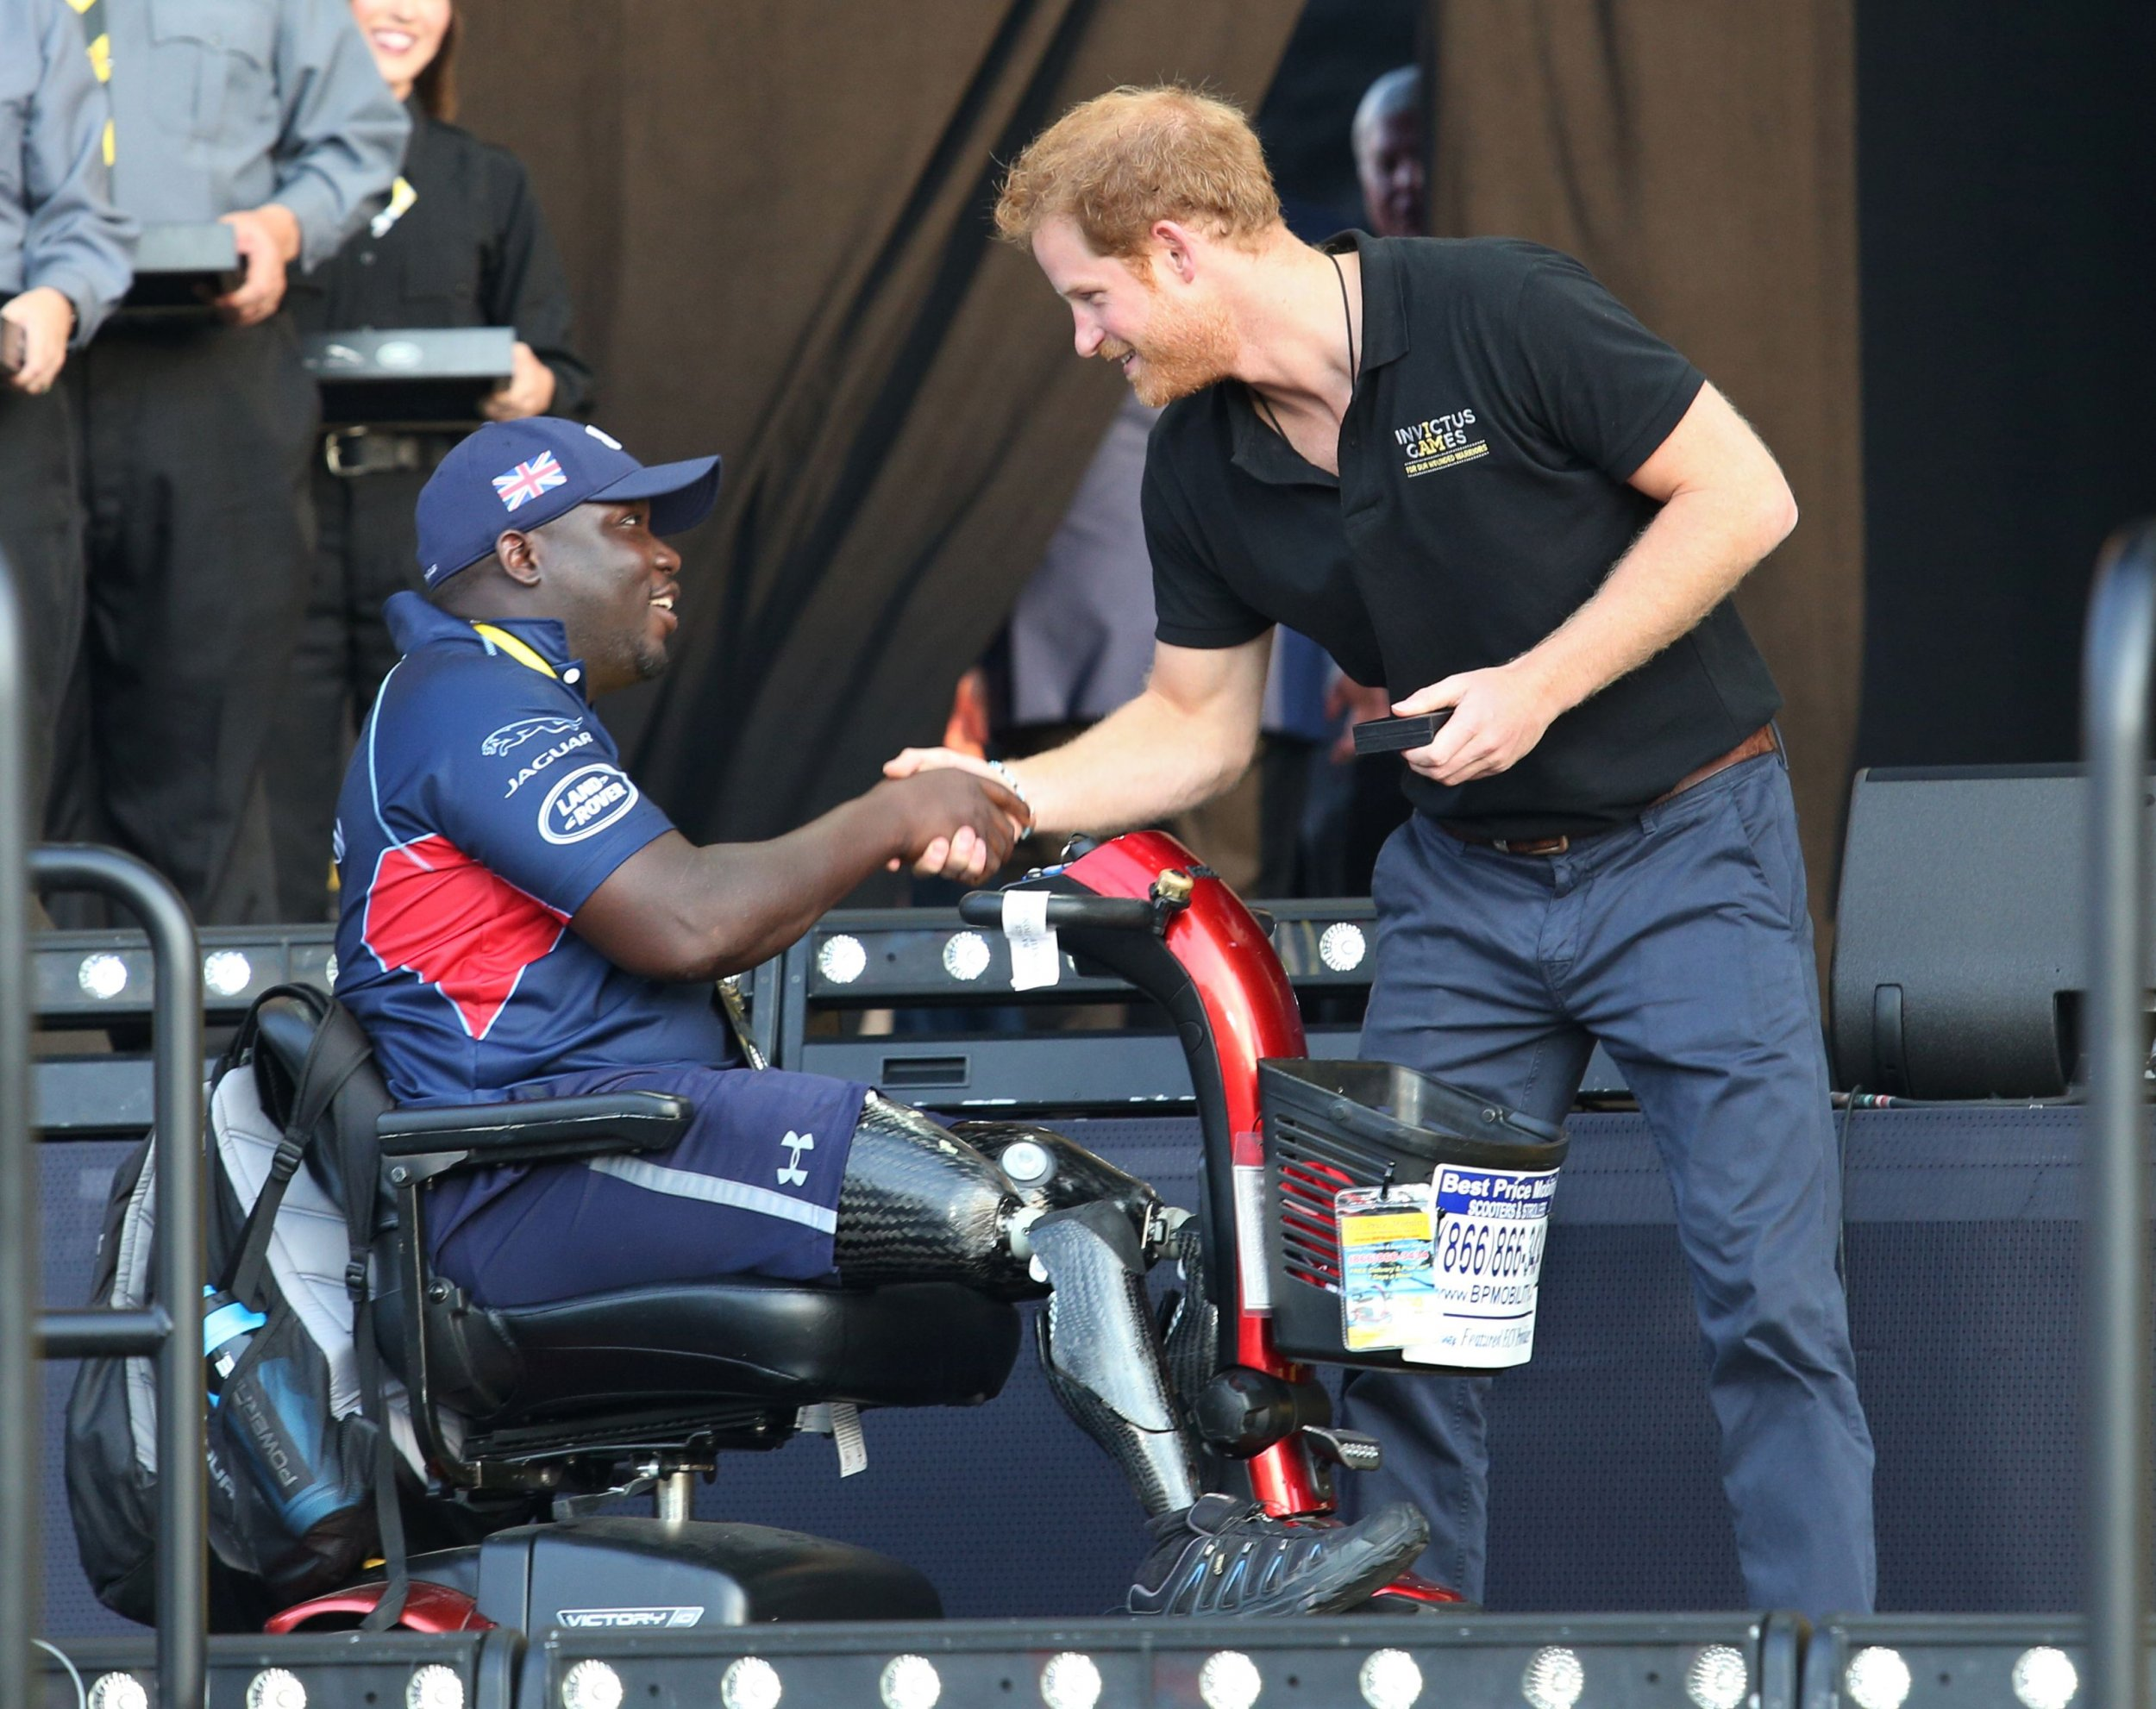 Prince Harry at Invictus